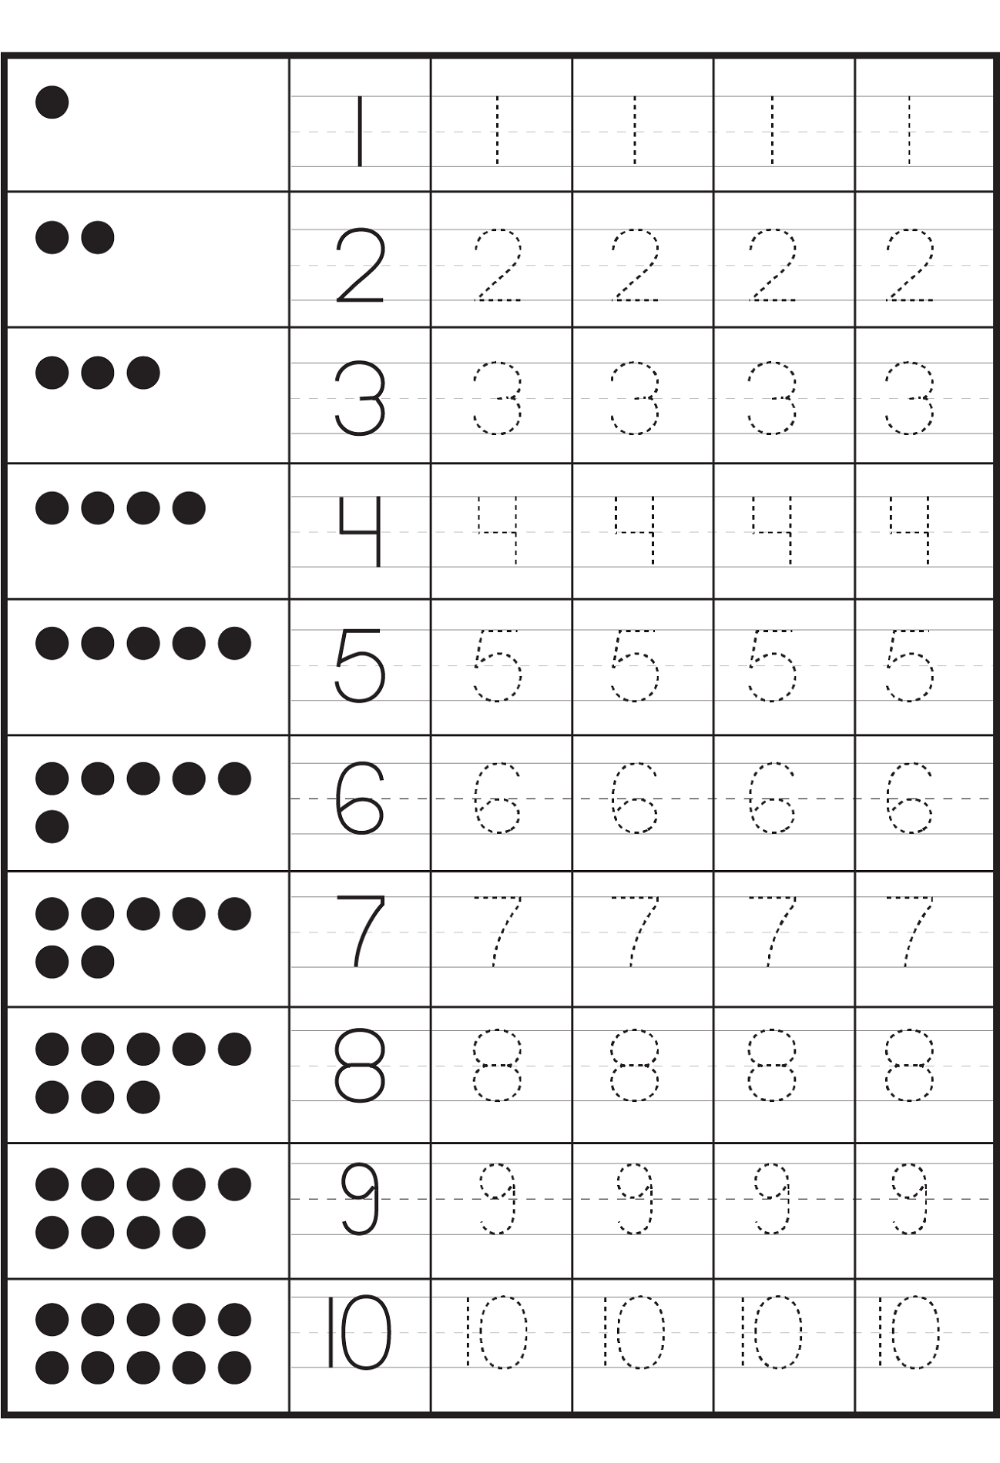 Number Trace Worksheets For Kid S Tracing Fun Printable Shelter Preschool Math Worksheets Preschool Number Worksheets Tracing Worksheets Preschool [ 1463 x 1000 Pixel ]